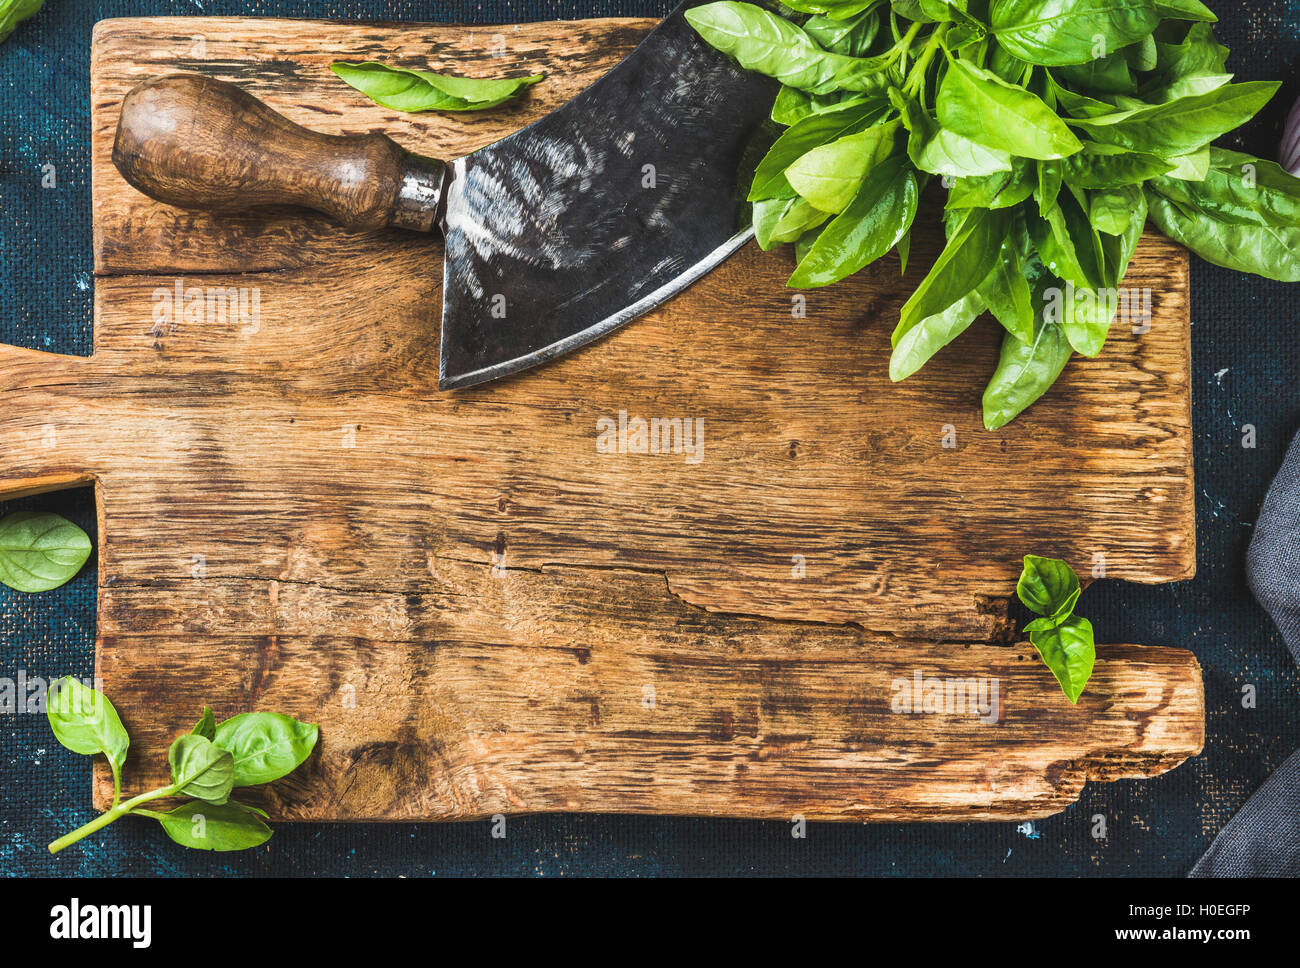 Fresh green basil and vintage herb chopper on rustic wooden bord, top view, copy space, horizontal composition - Stock Image